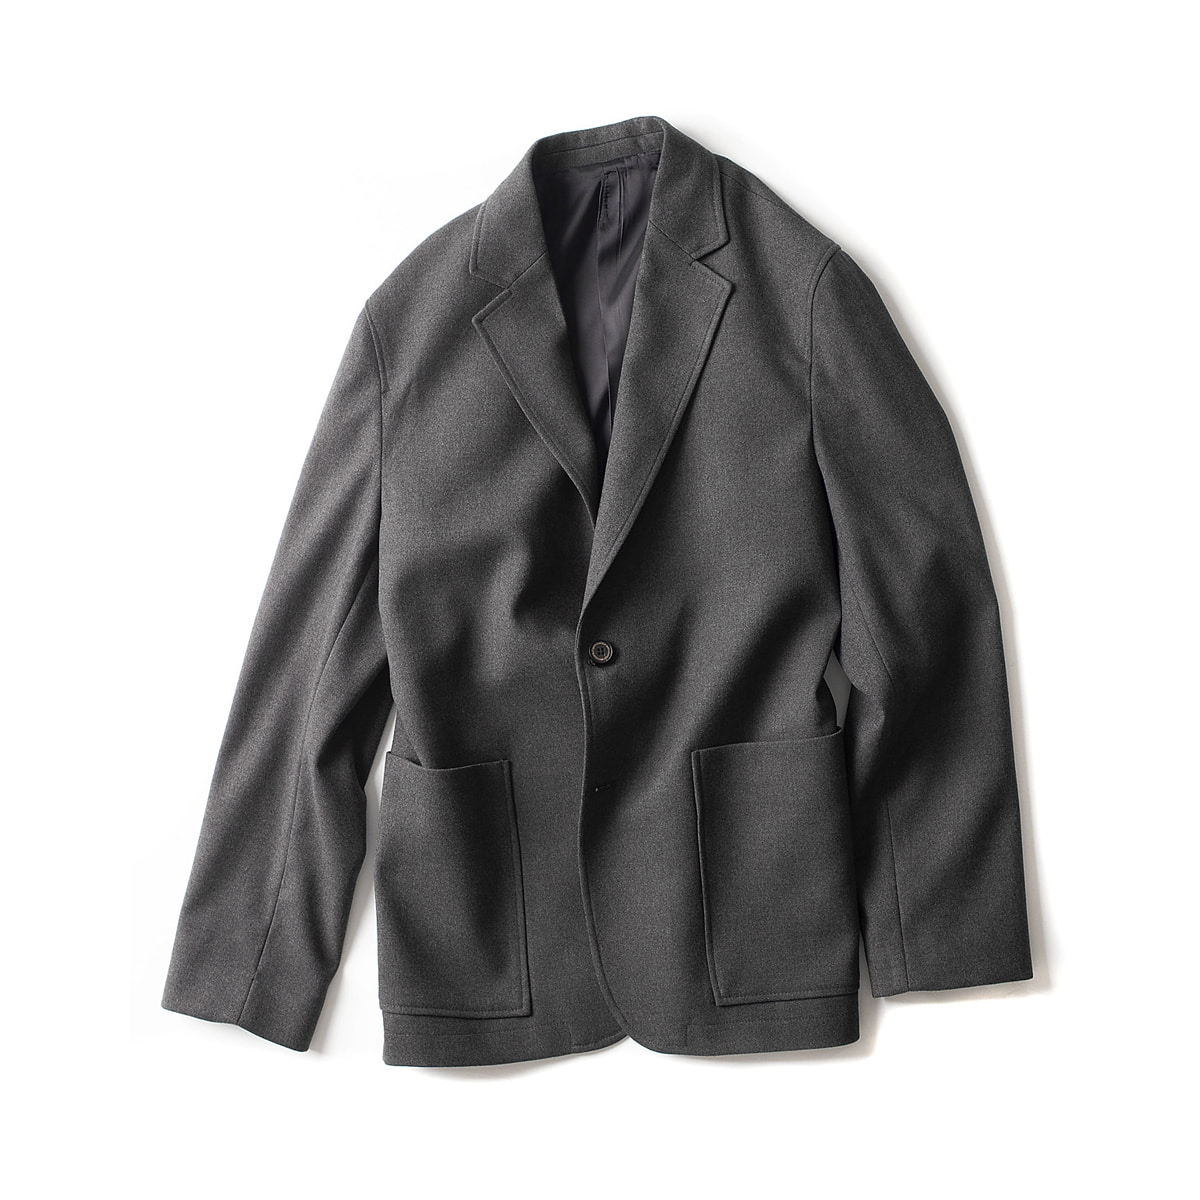 [BIRTHDAYSUIT] DAILY SUIT JACKET 'CHARCOAL'